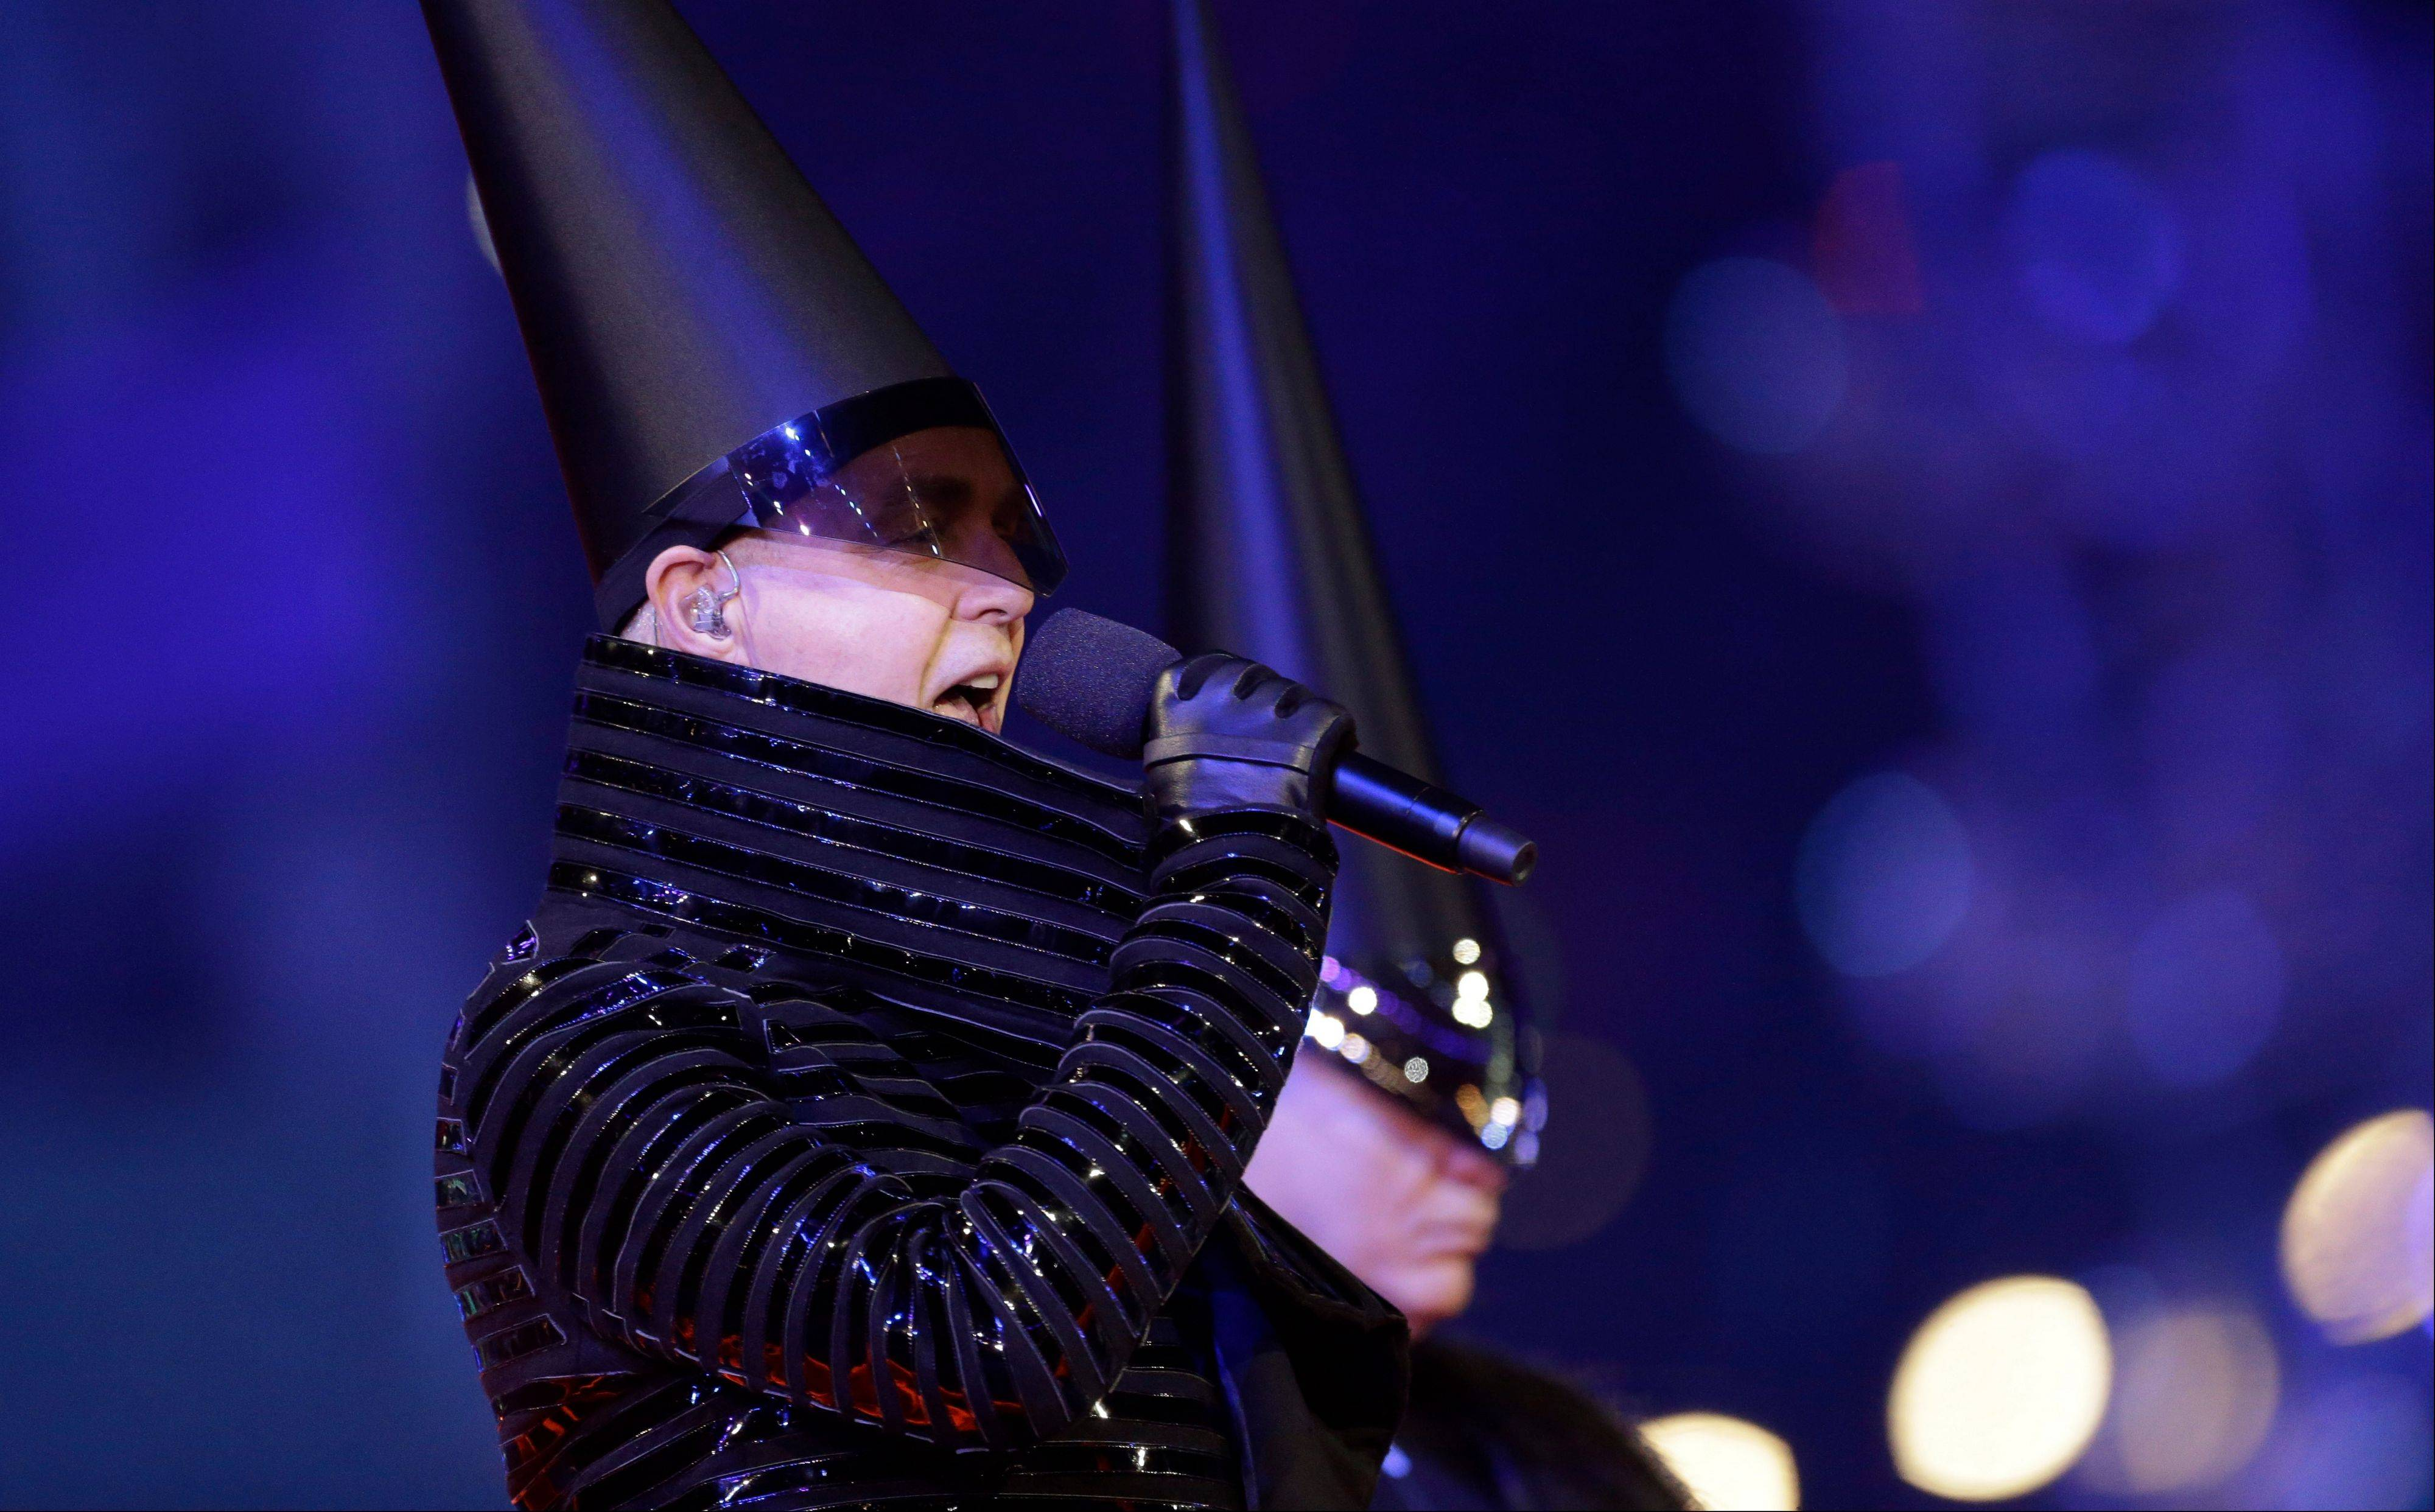 Neil Tennant, singer of the Pet Shop Boys, performs during the Closing Ceremony at the 2012 Summer Olympics.